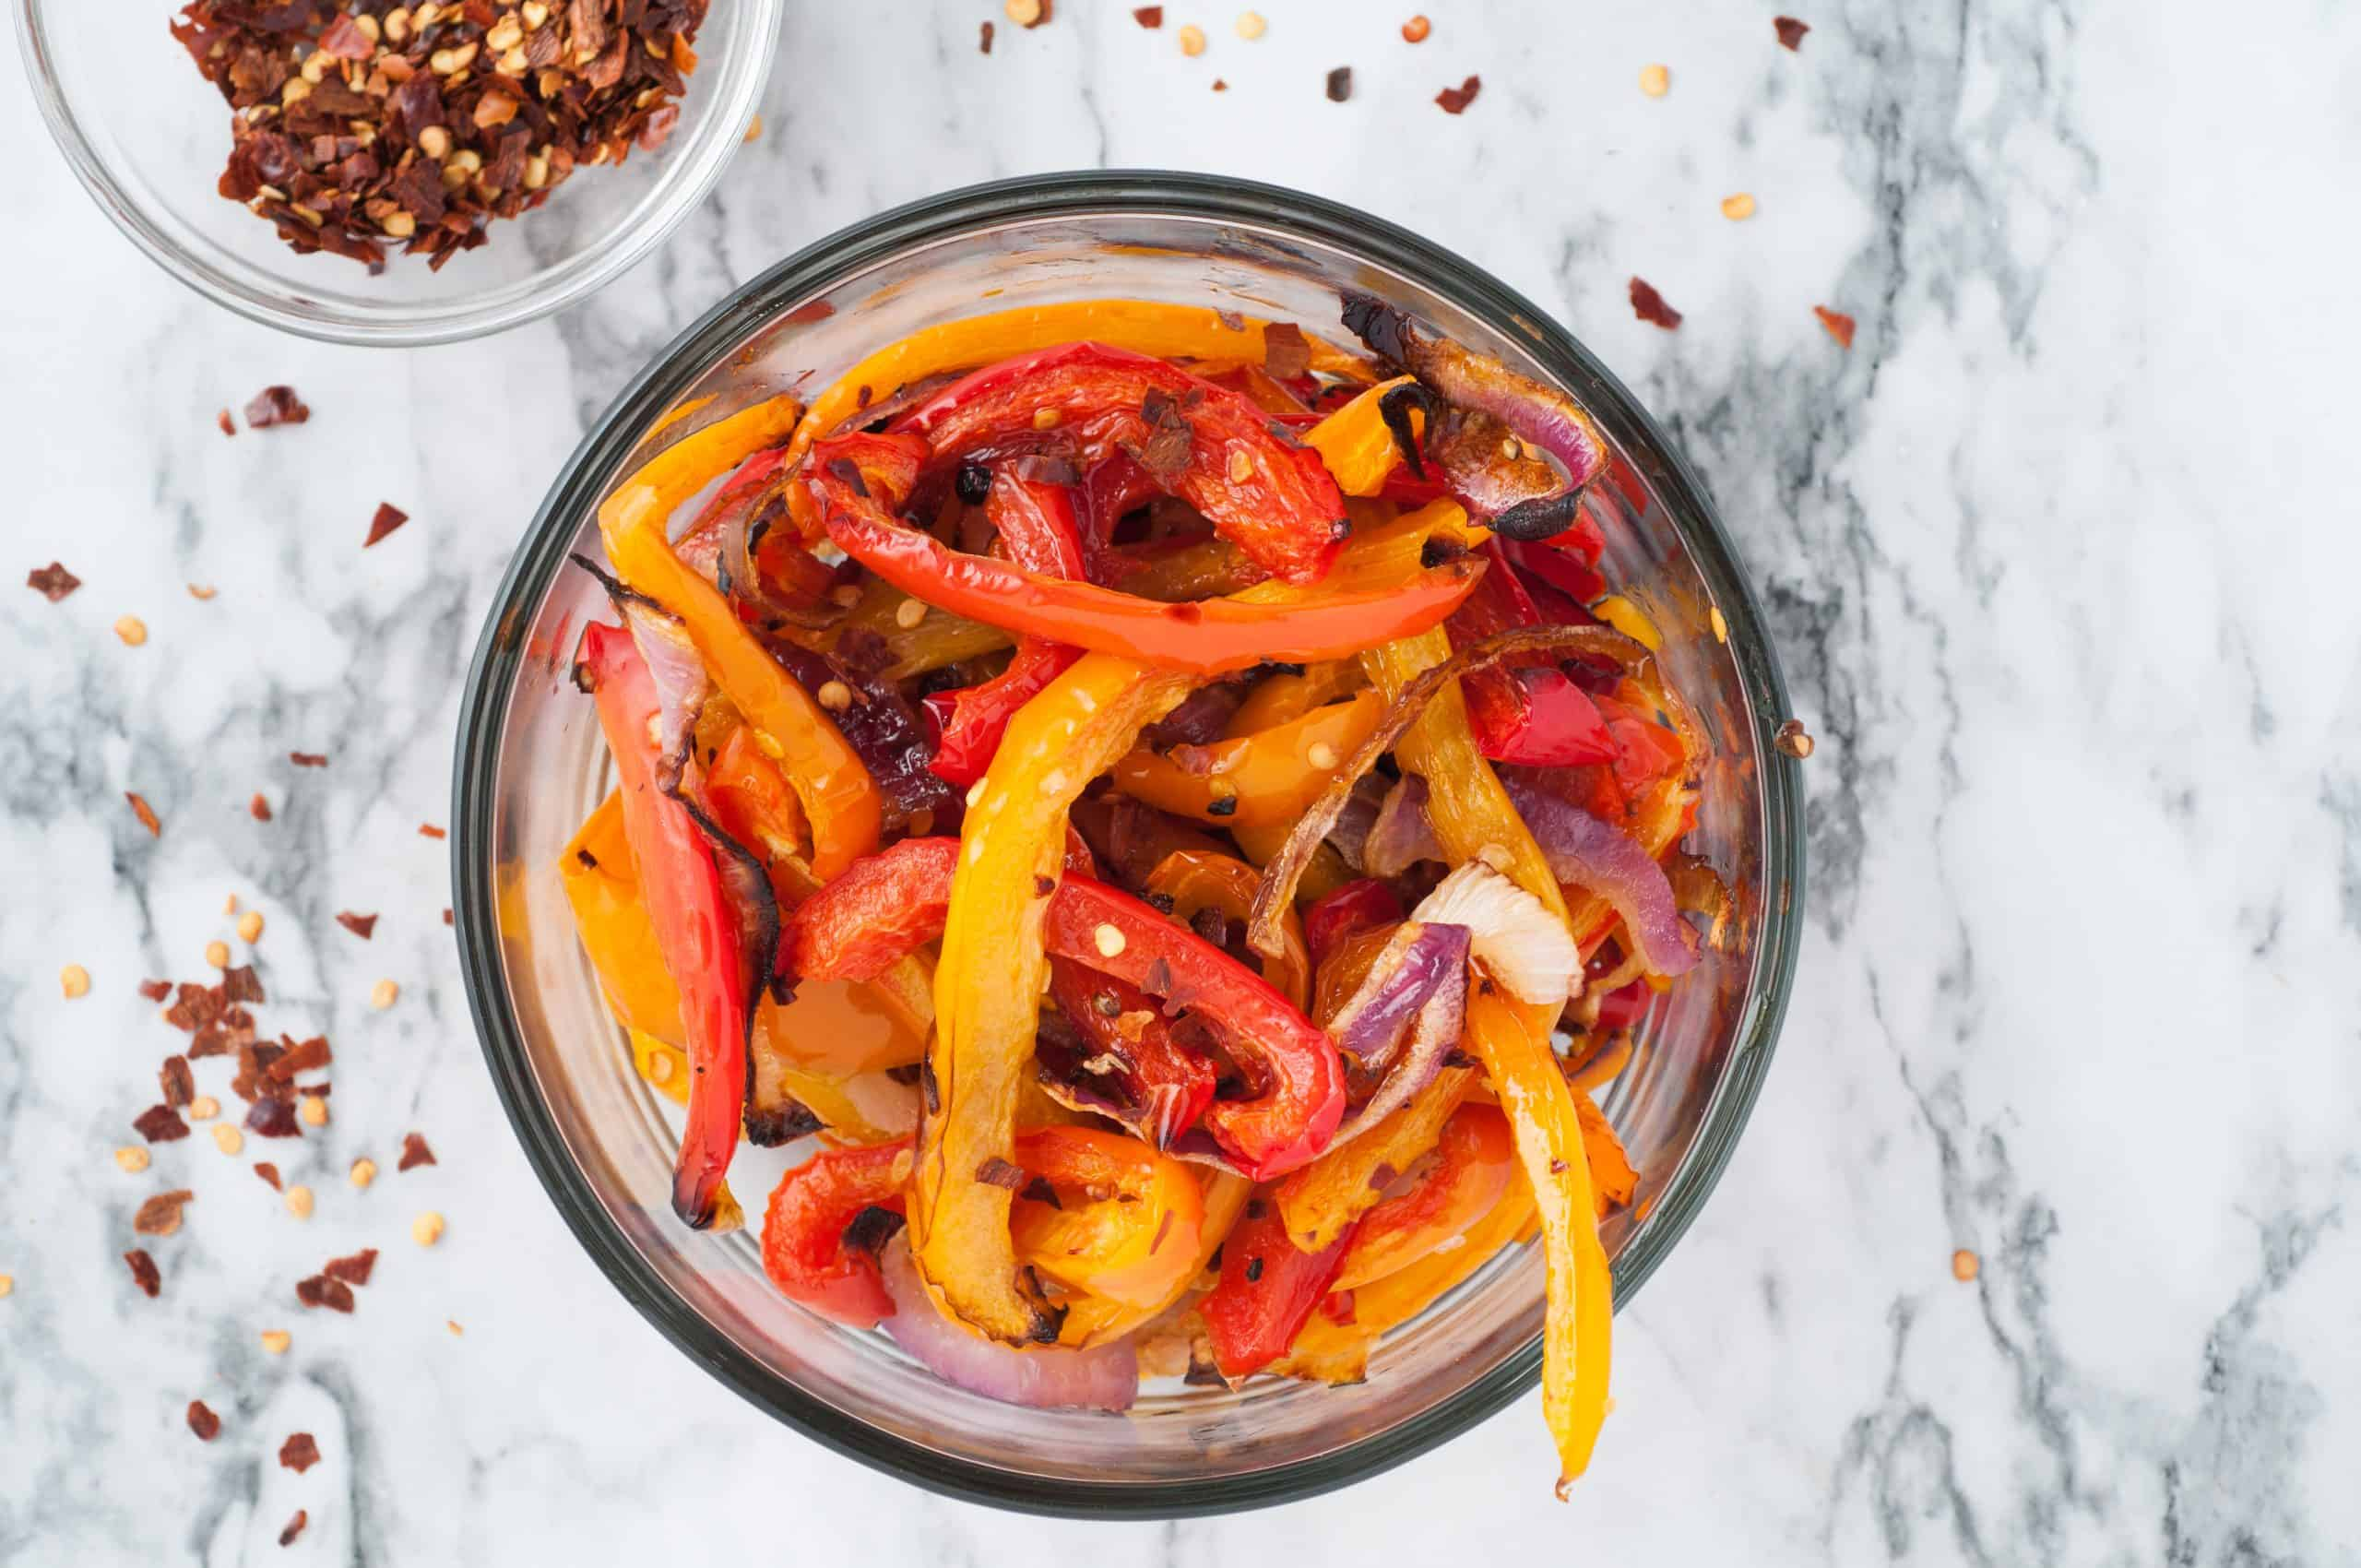 Bell Pepper Strips and Onions in a glass bowl on a white marble background with crushed red pepper in a bowl and sprinkled around it.